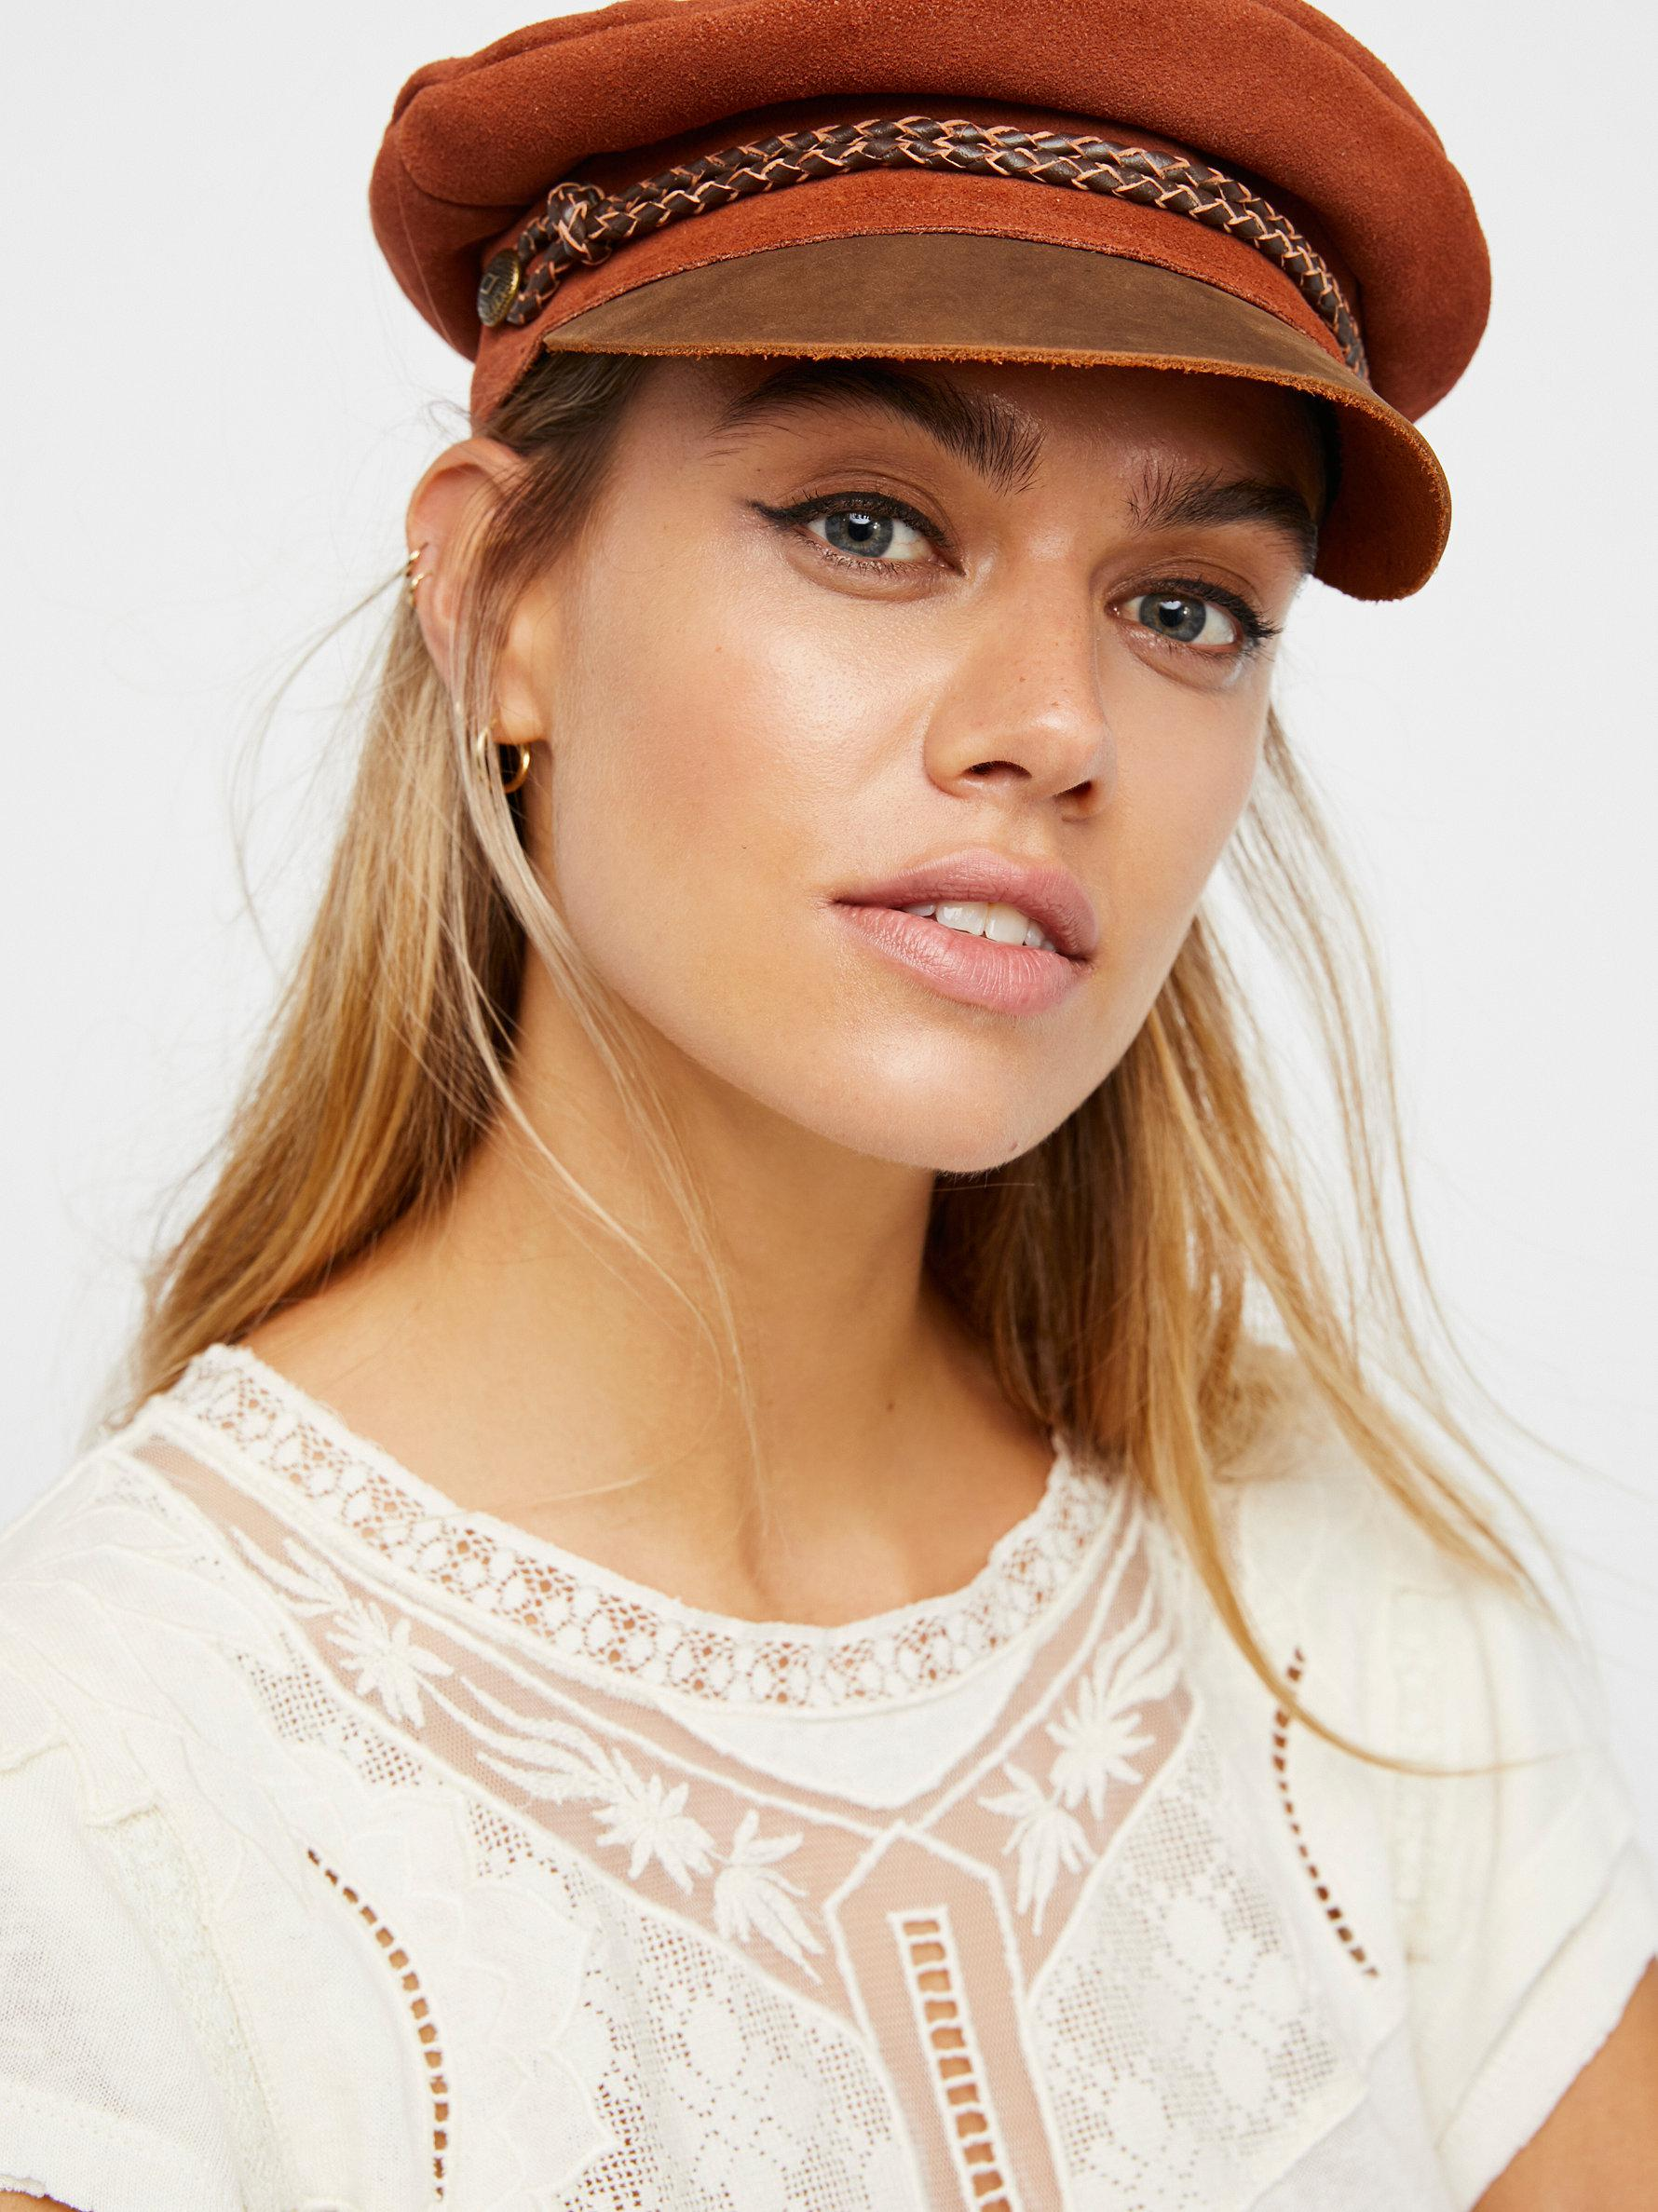 Lyst - Free People Kayla Leather Lieutenant Hat in Brown b3b03db68e18